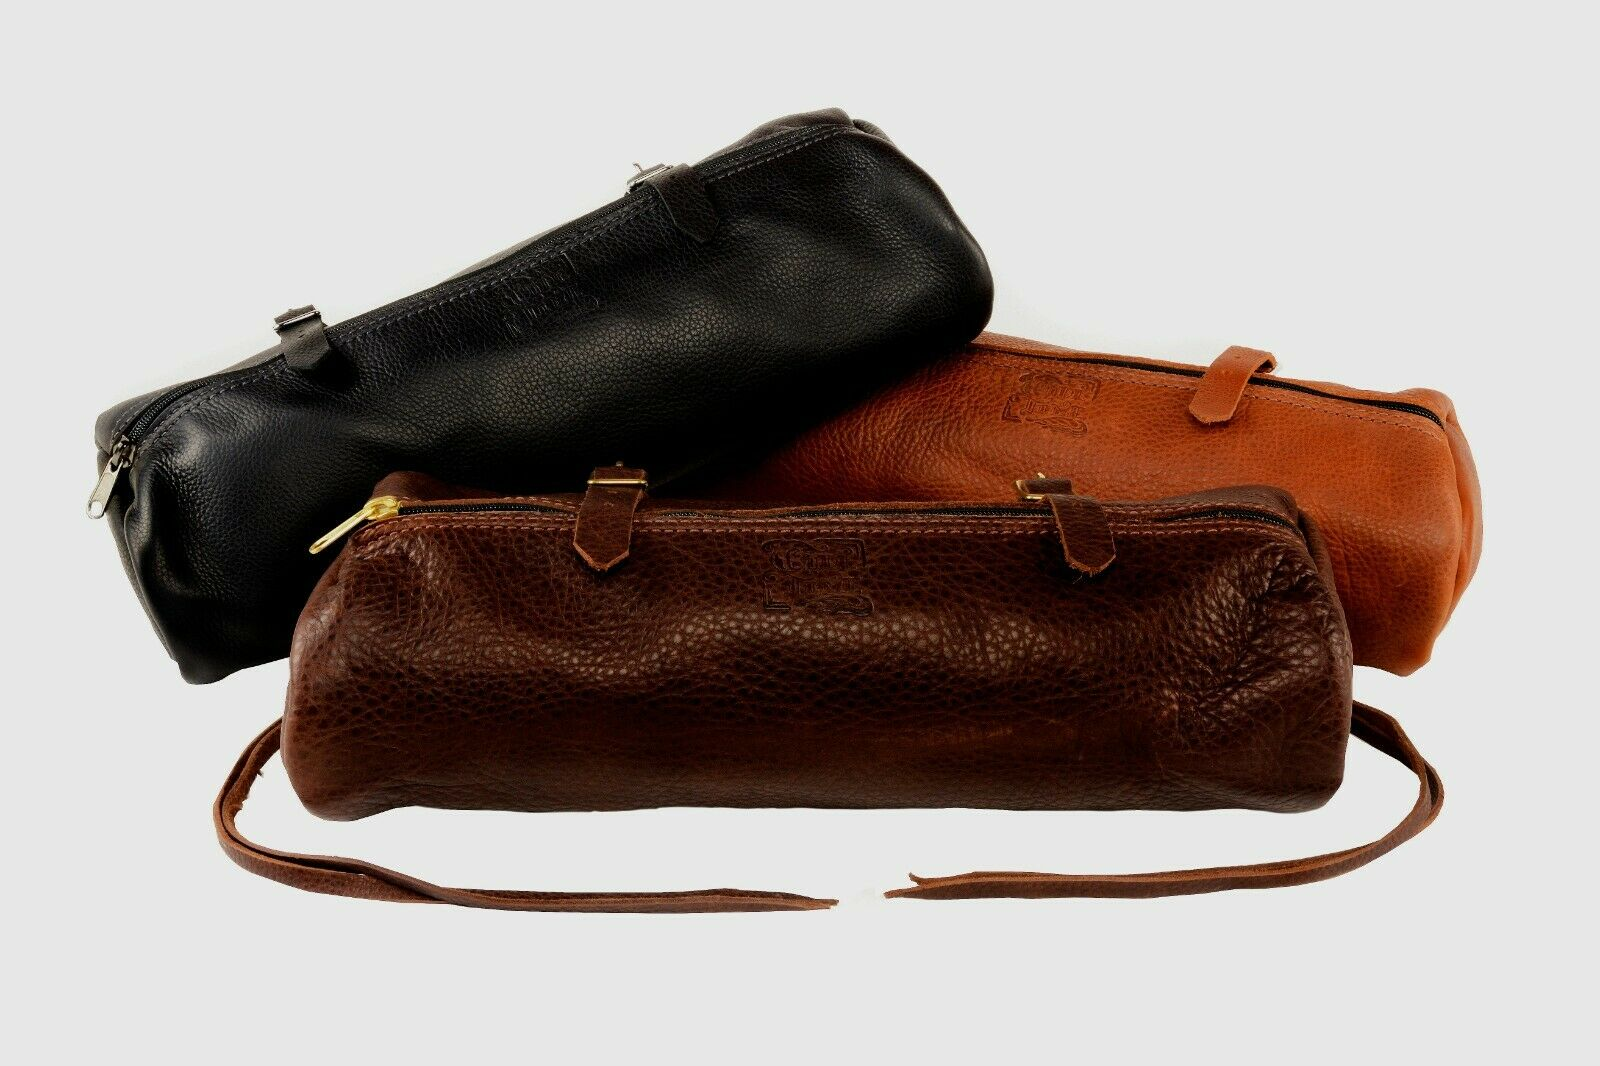 OLDE TIME SADDLE BAGS™ Horse Leather Cantle Bag - Tucker /